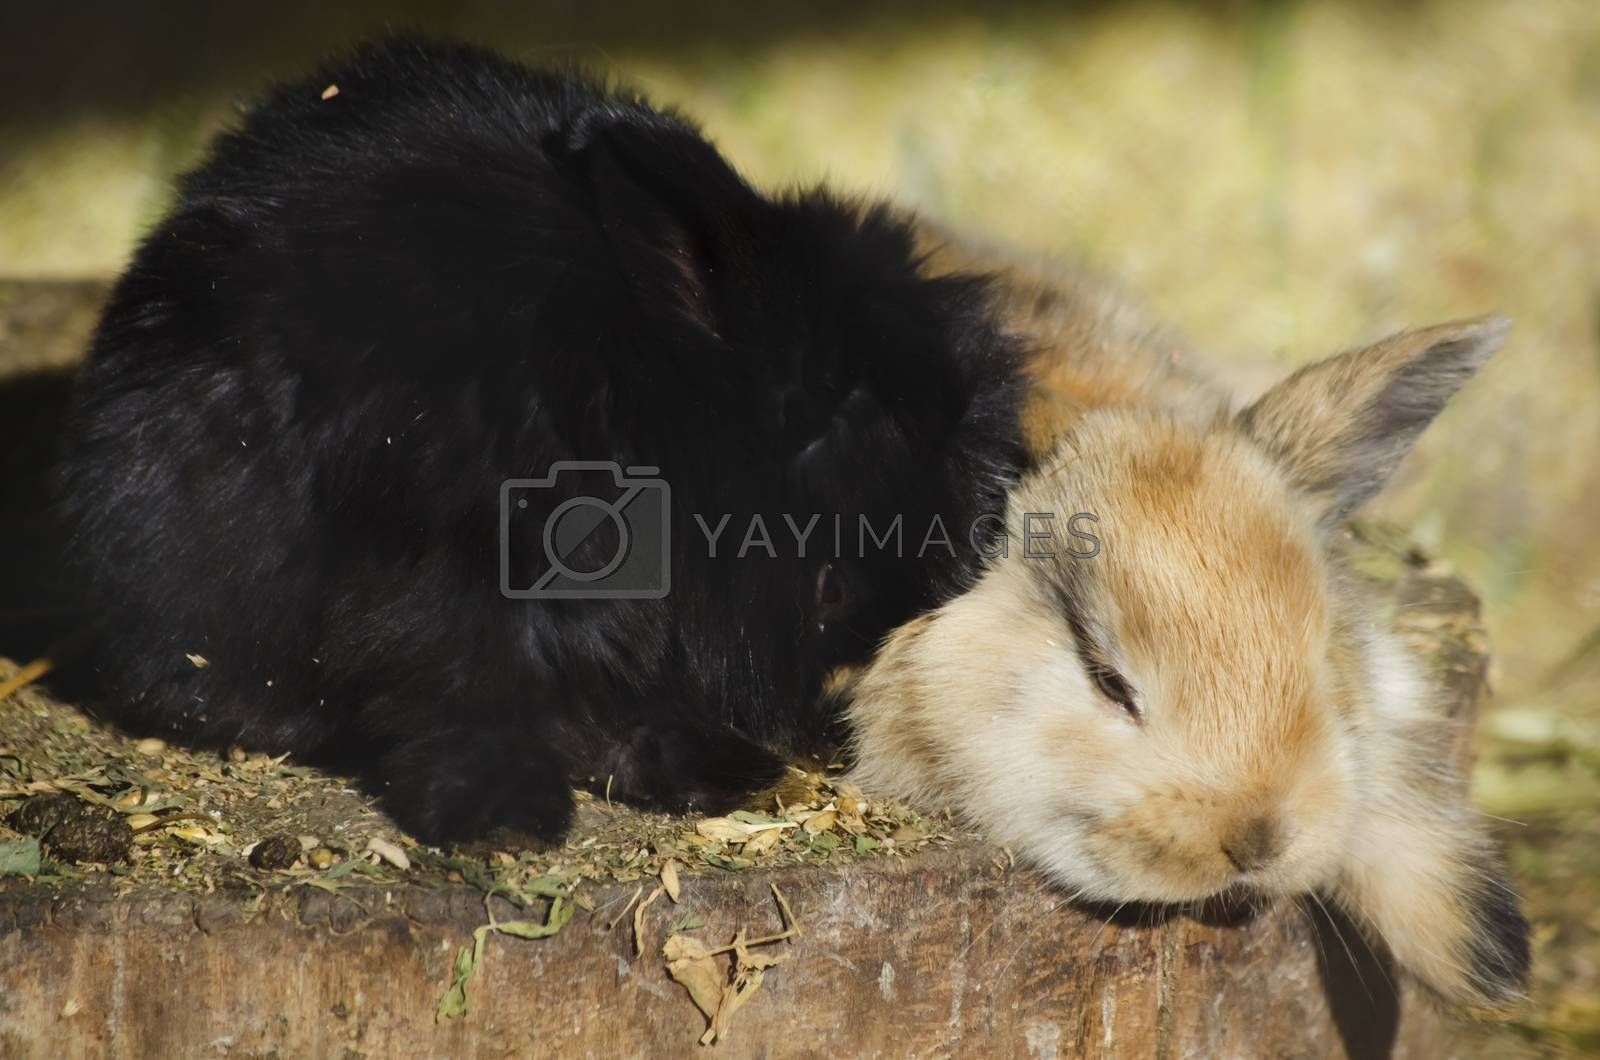 Photo of the Two Little Rabbits